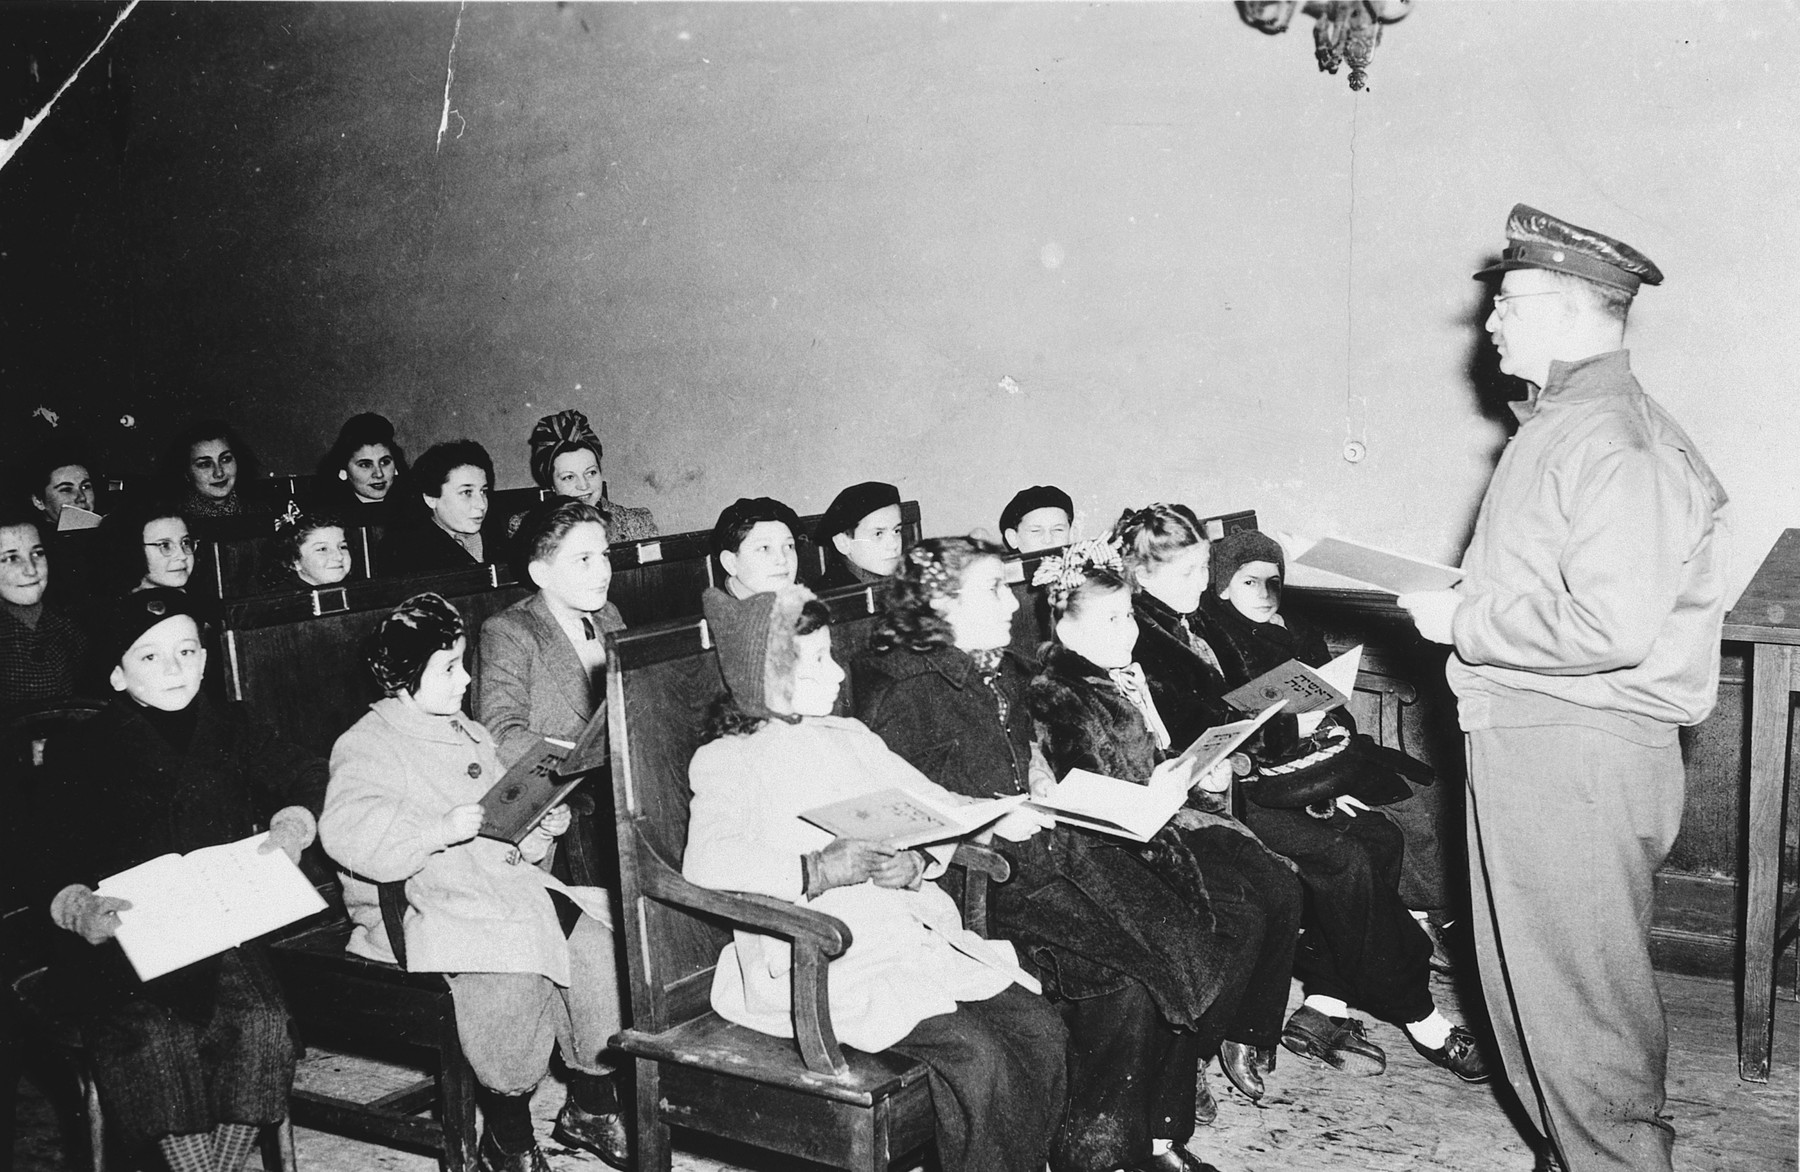 American Army chaplain Klein provides religious instruction to French Jewish children after liberation.